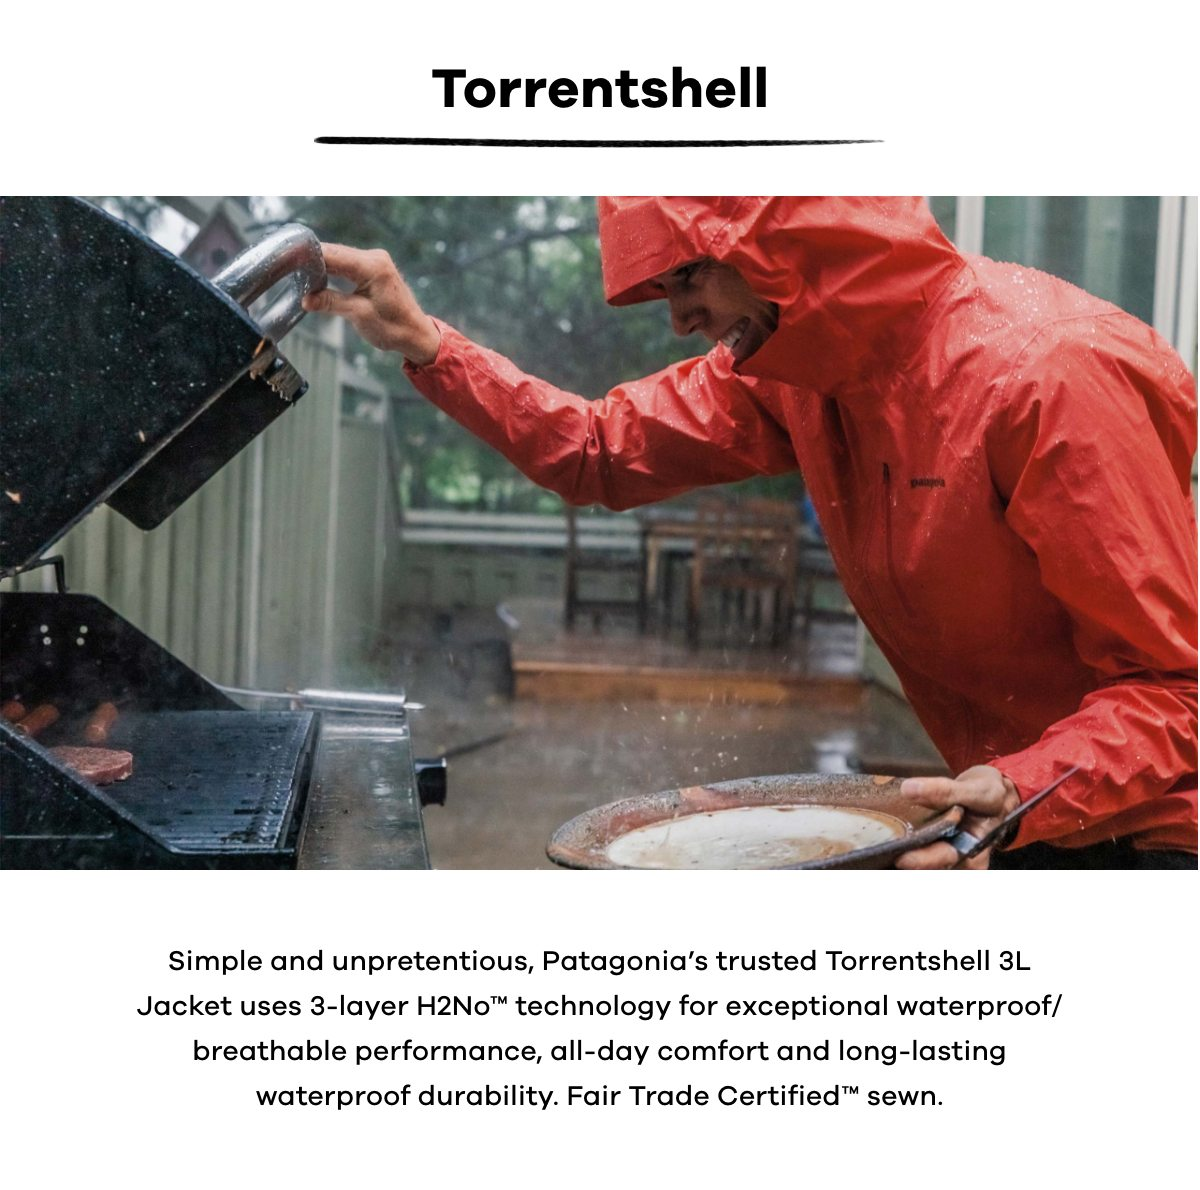 Patagonia Torrentshell | Find out more